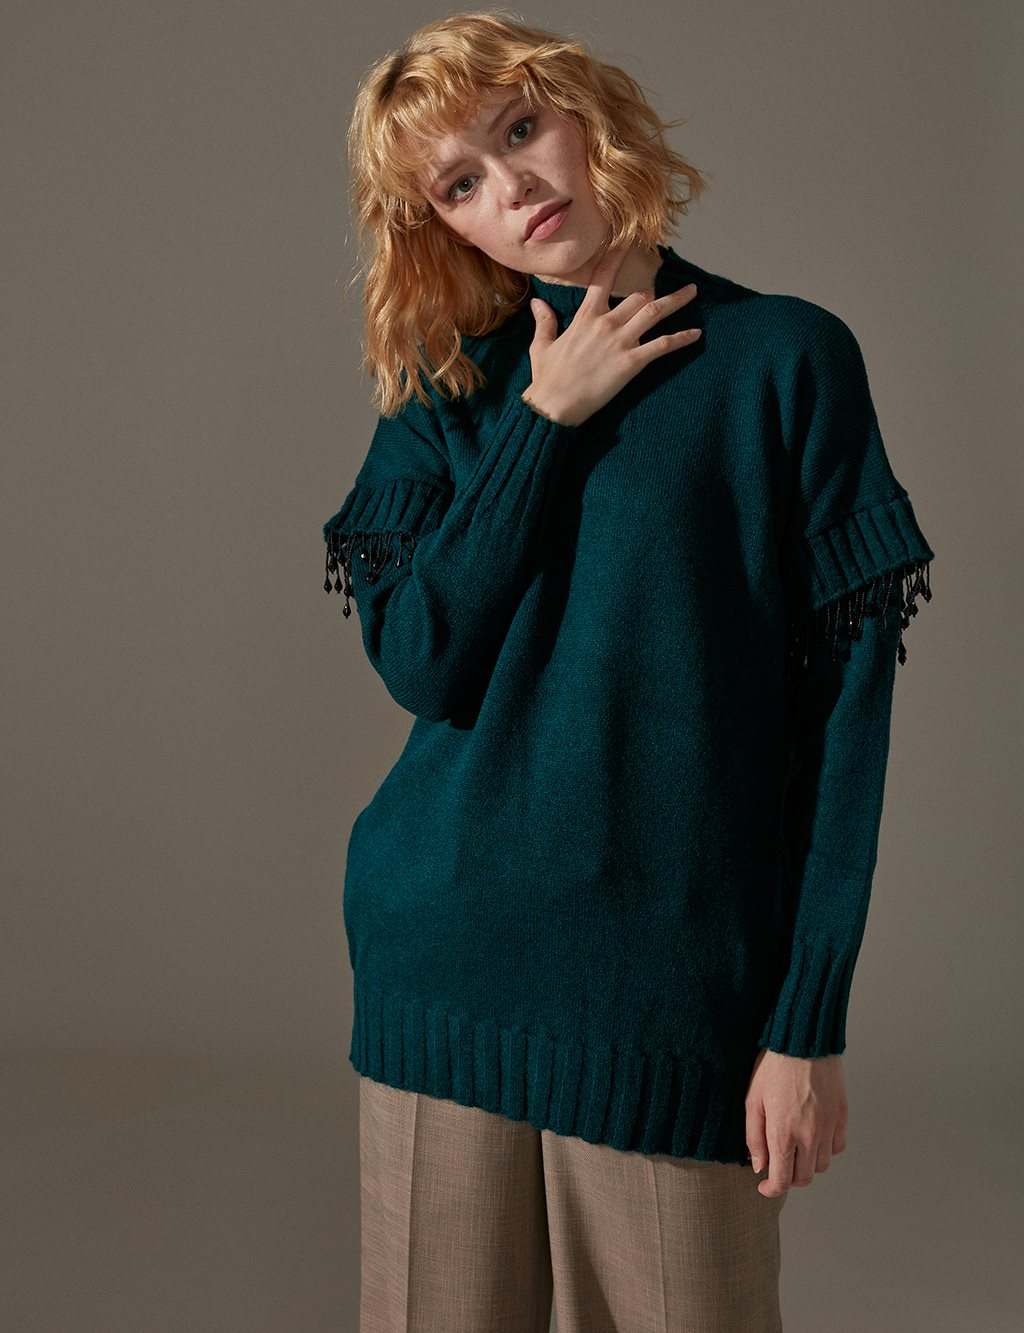 Detailed Knitwear Tunic A9 TRK11 Petrol